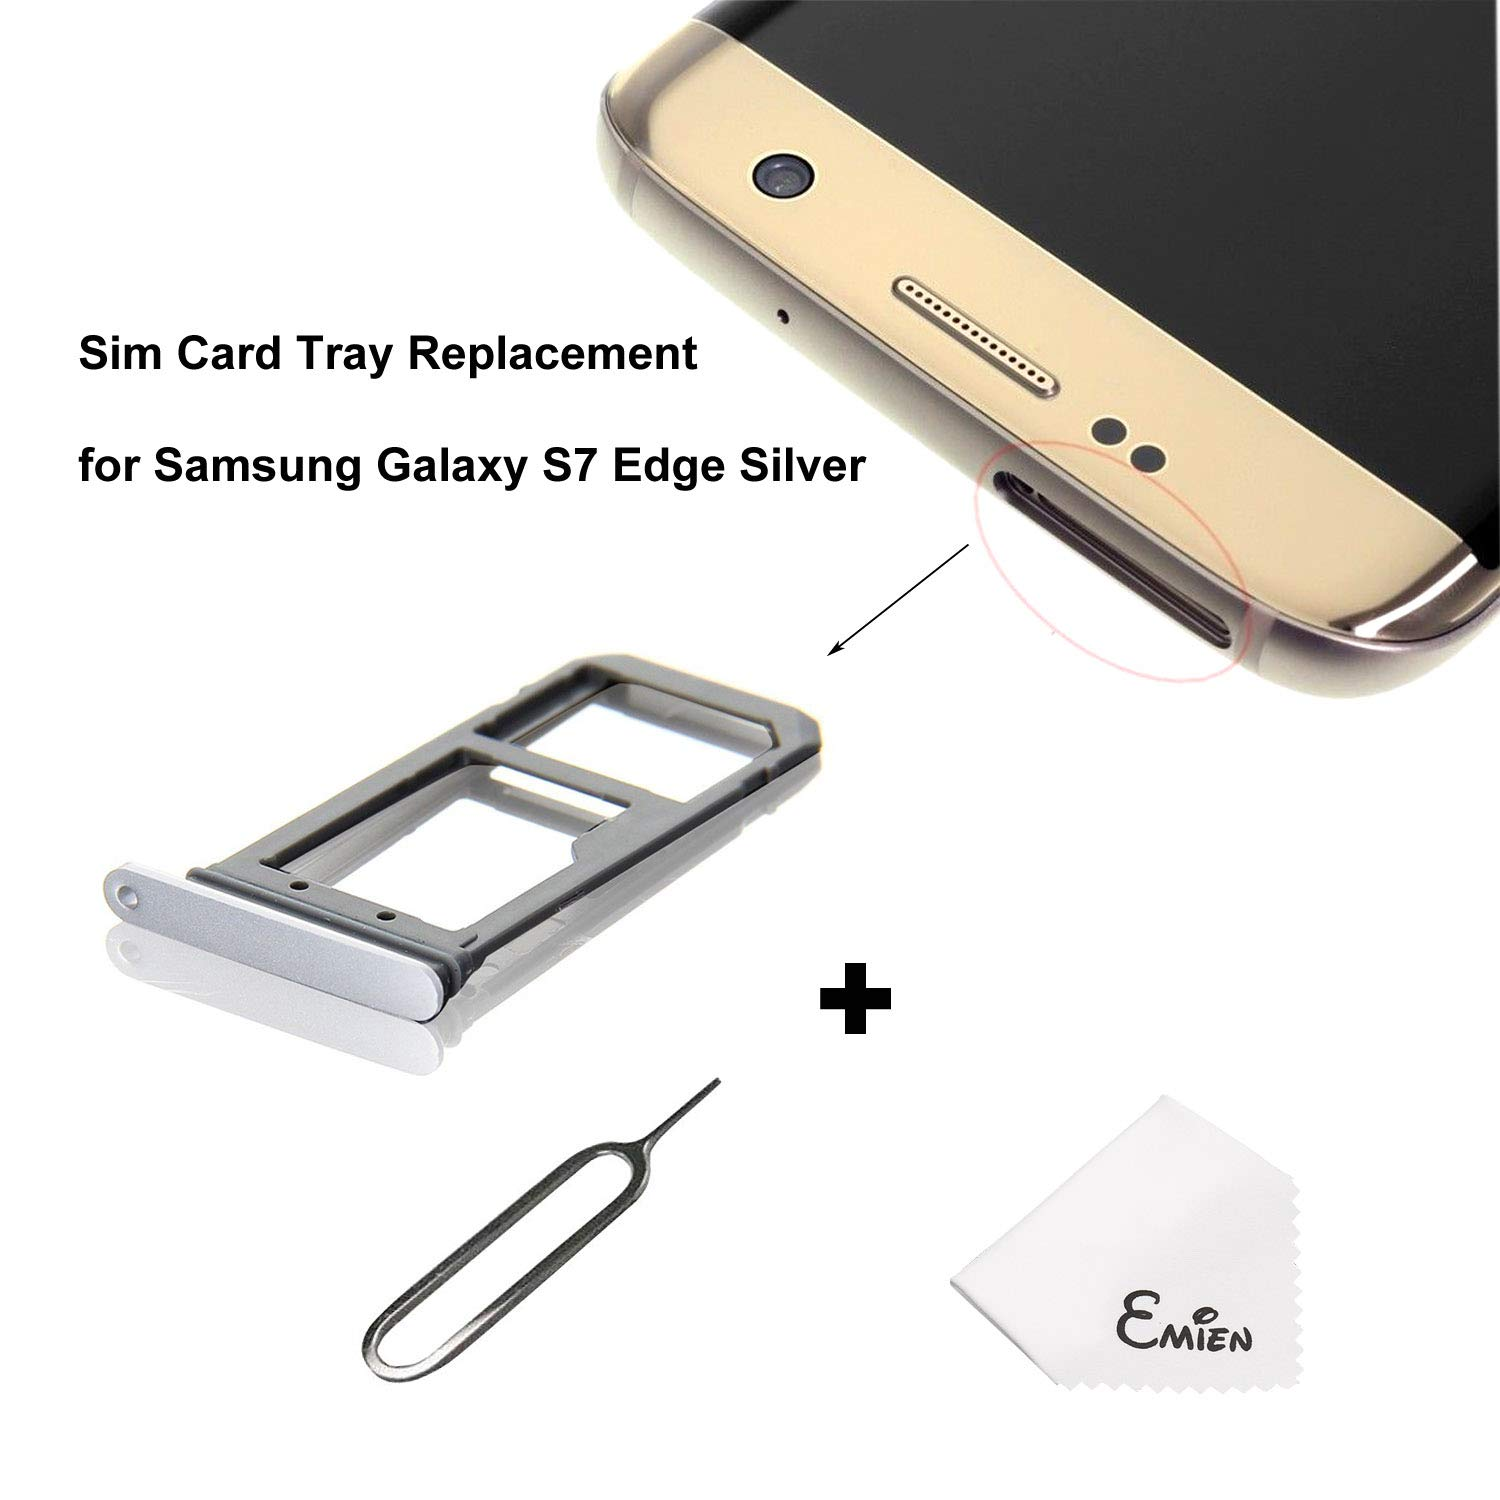 Gray EMiEN Single SIM Card Tray Slot Holder Replacement for Samsung Galaxy S7 Edge G935 SIM Card Tray Open Eject Pin